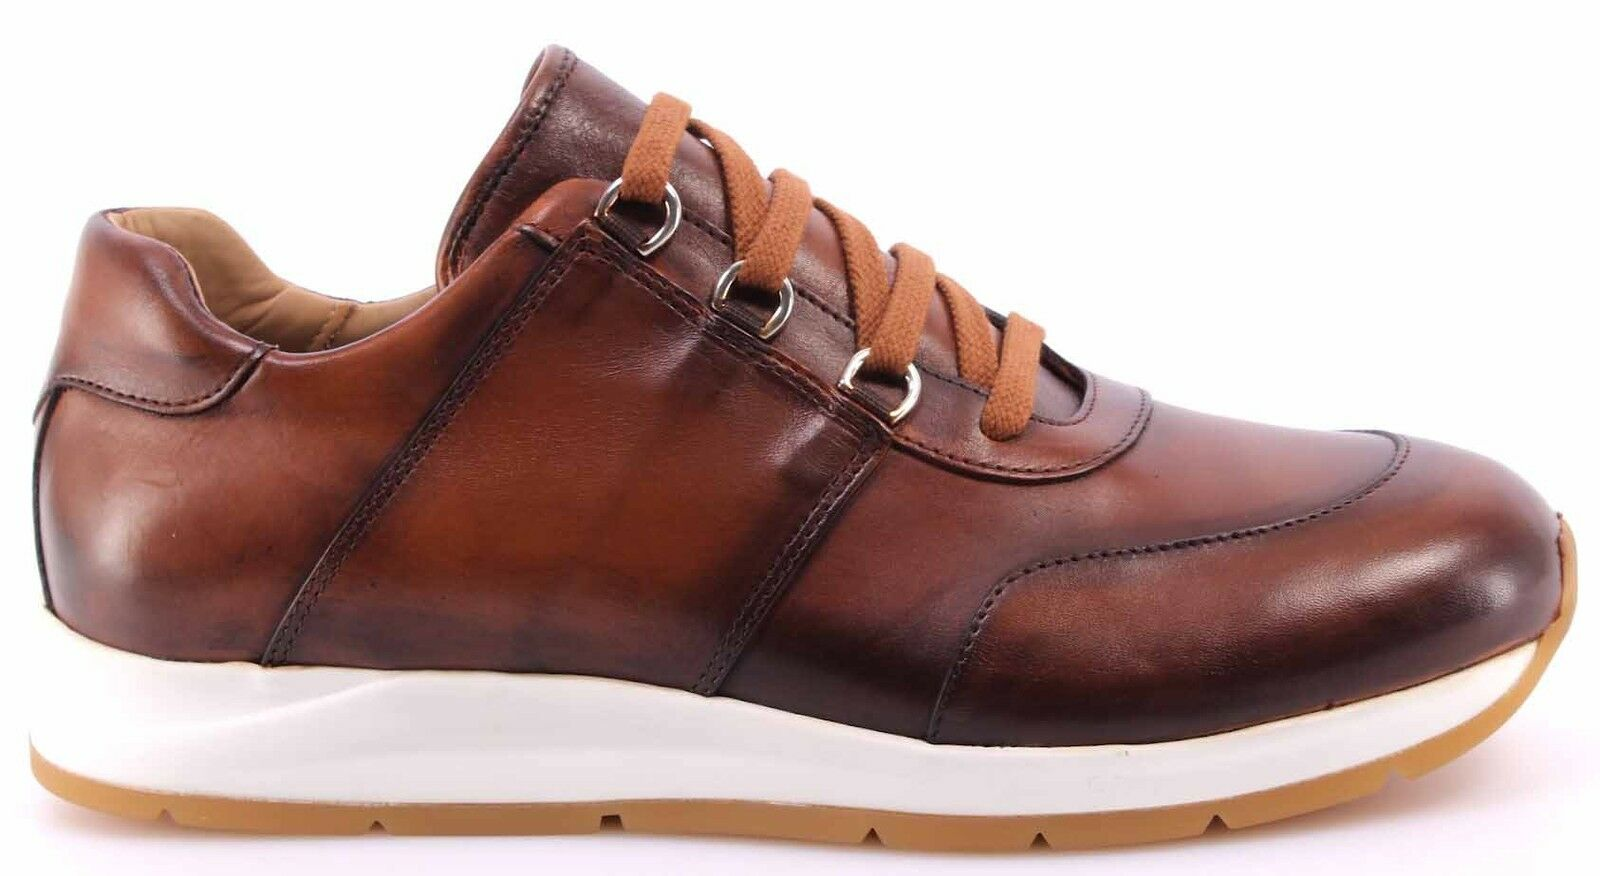 Scarpe Uomo Sneakers Antic ROBERTO BOTTICELLI Limited Vitello Antic Sneakers Cognac Experience db7154